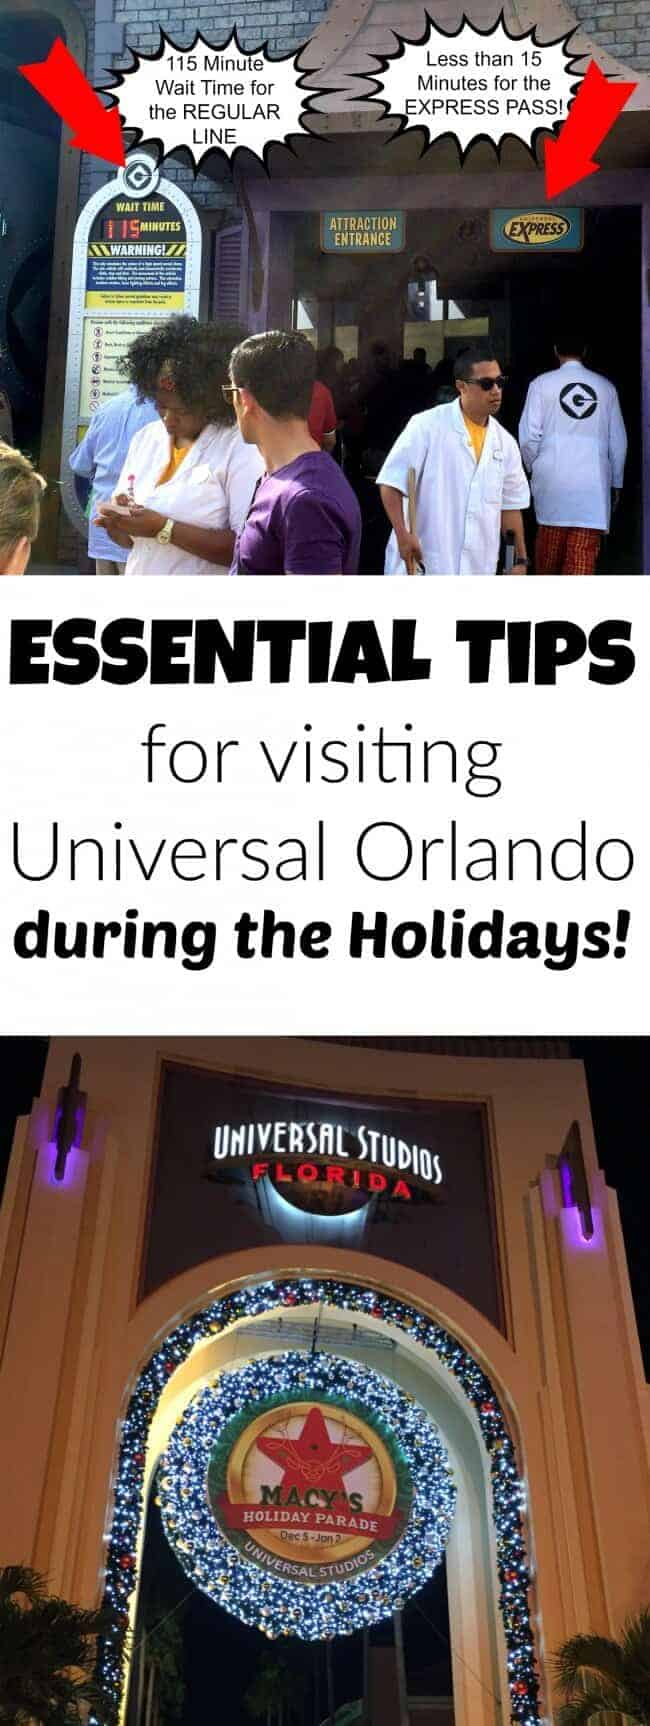 Essential tips for surviving Universal Orlando during the holidays